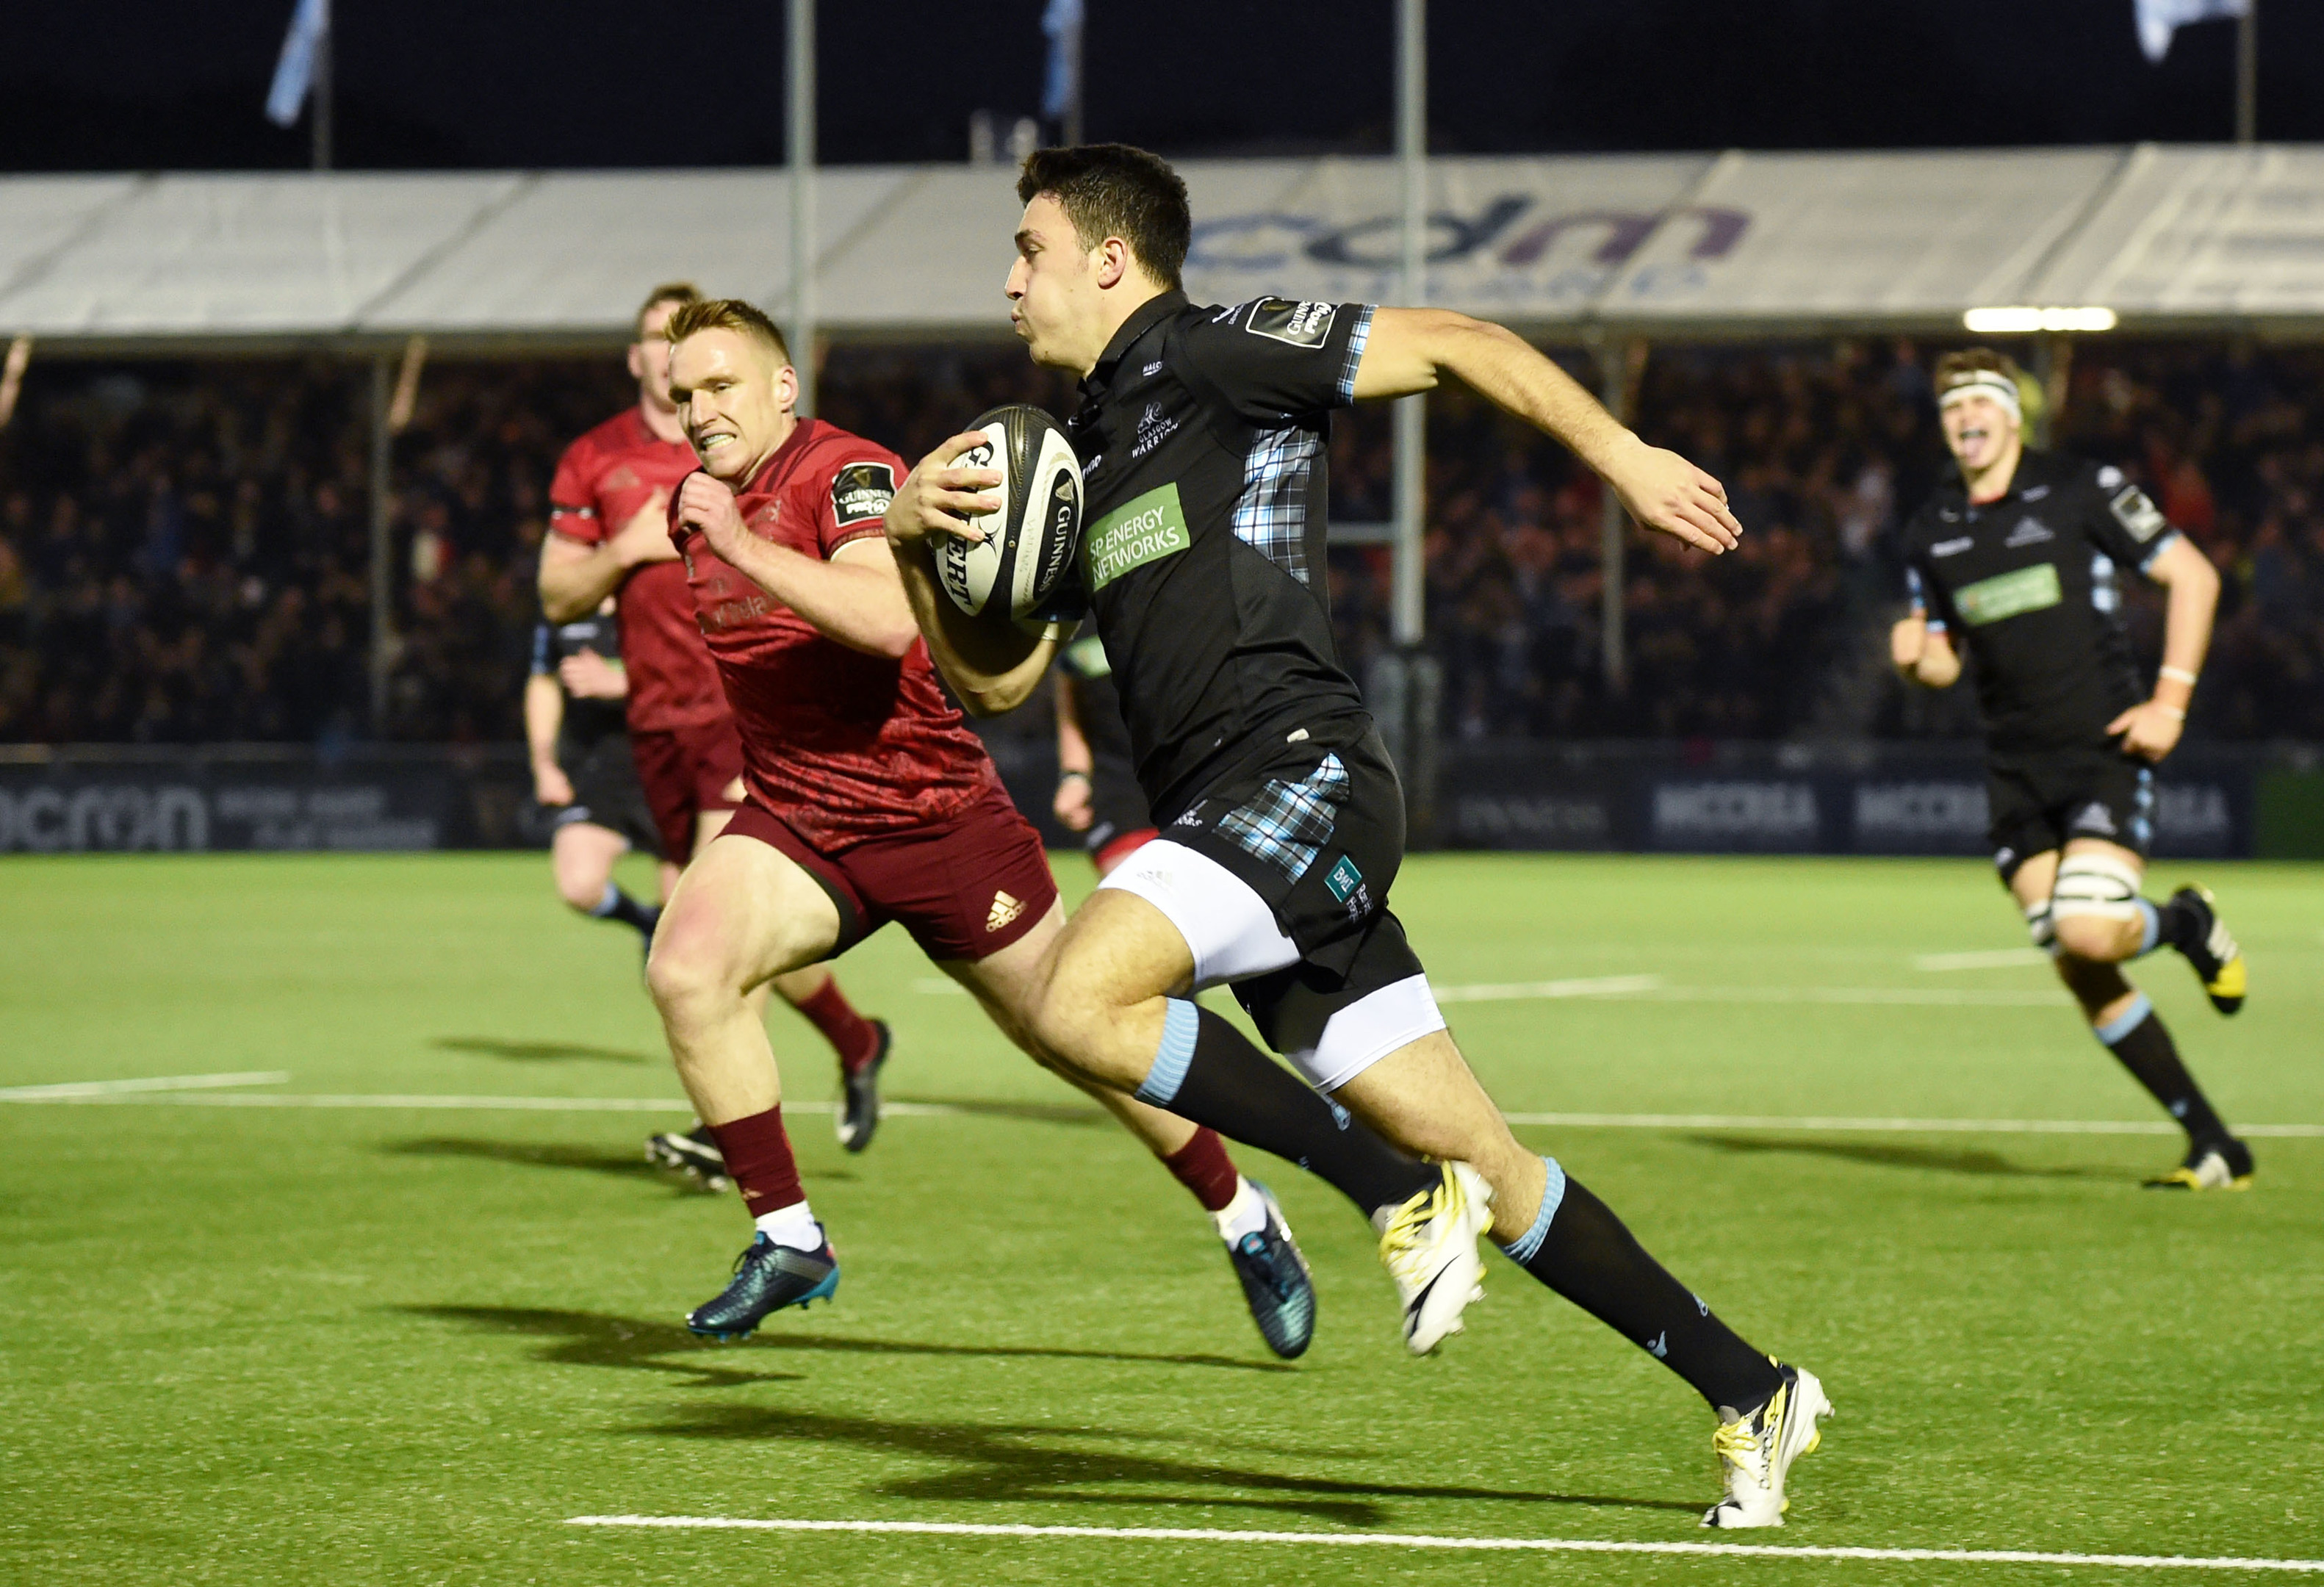 Leo Sarto runs in to score Glasgow's early try against Munster at Scotstoun.